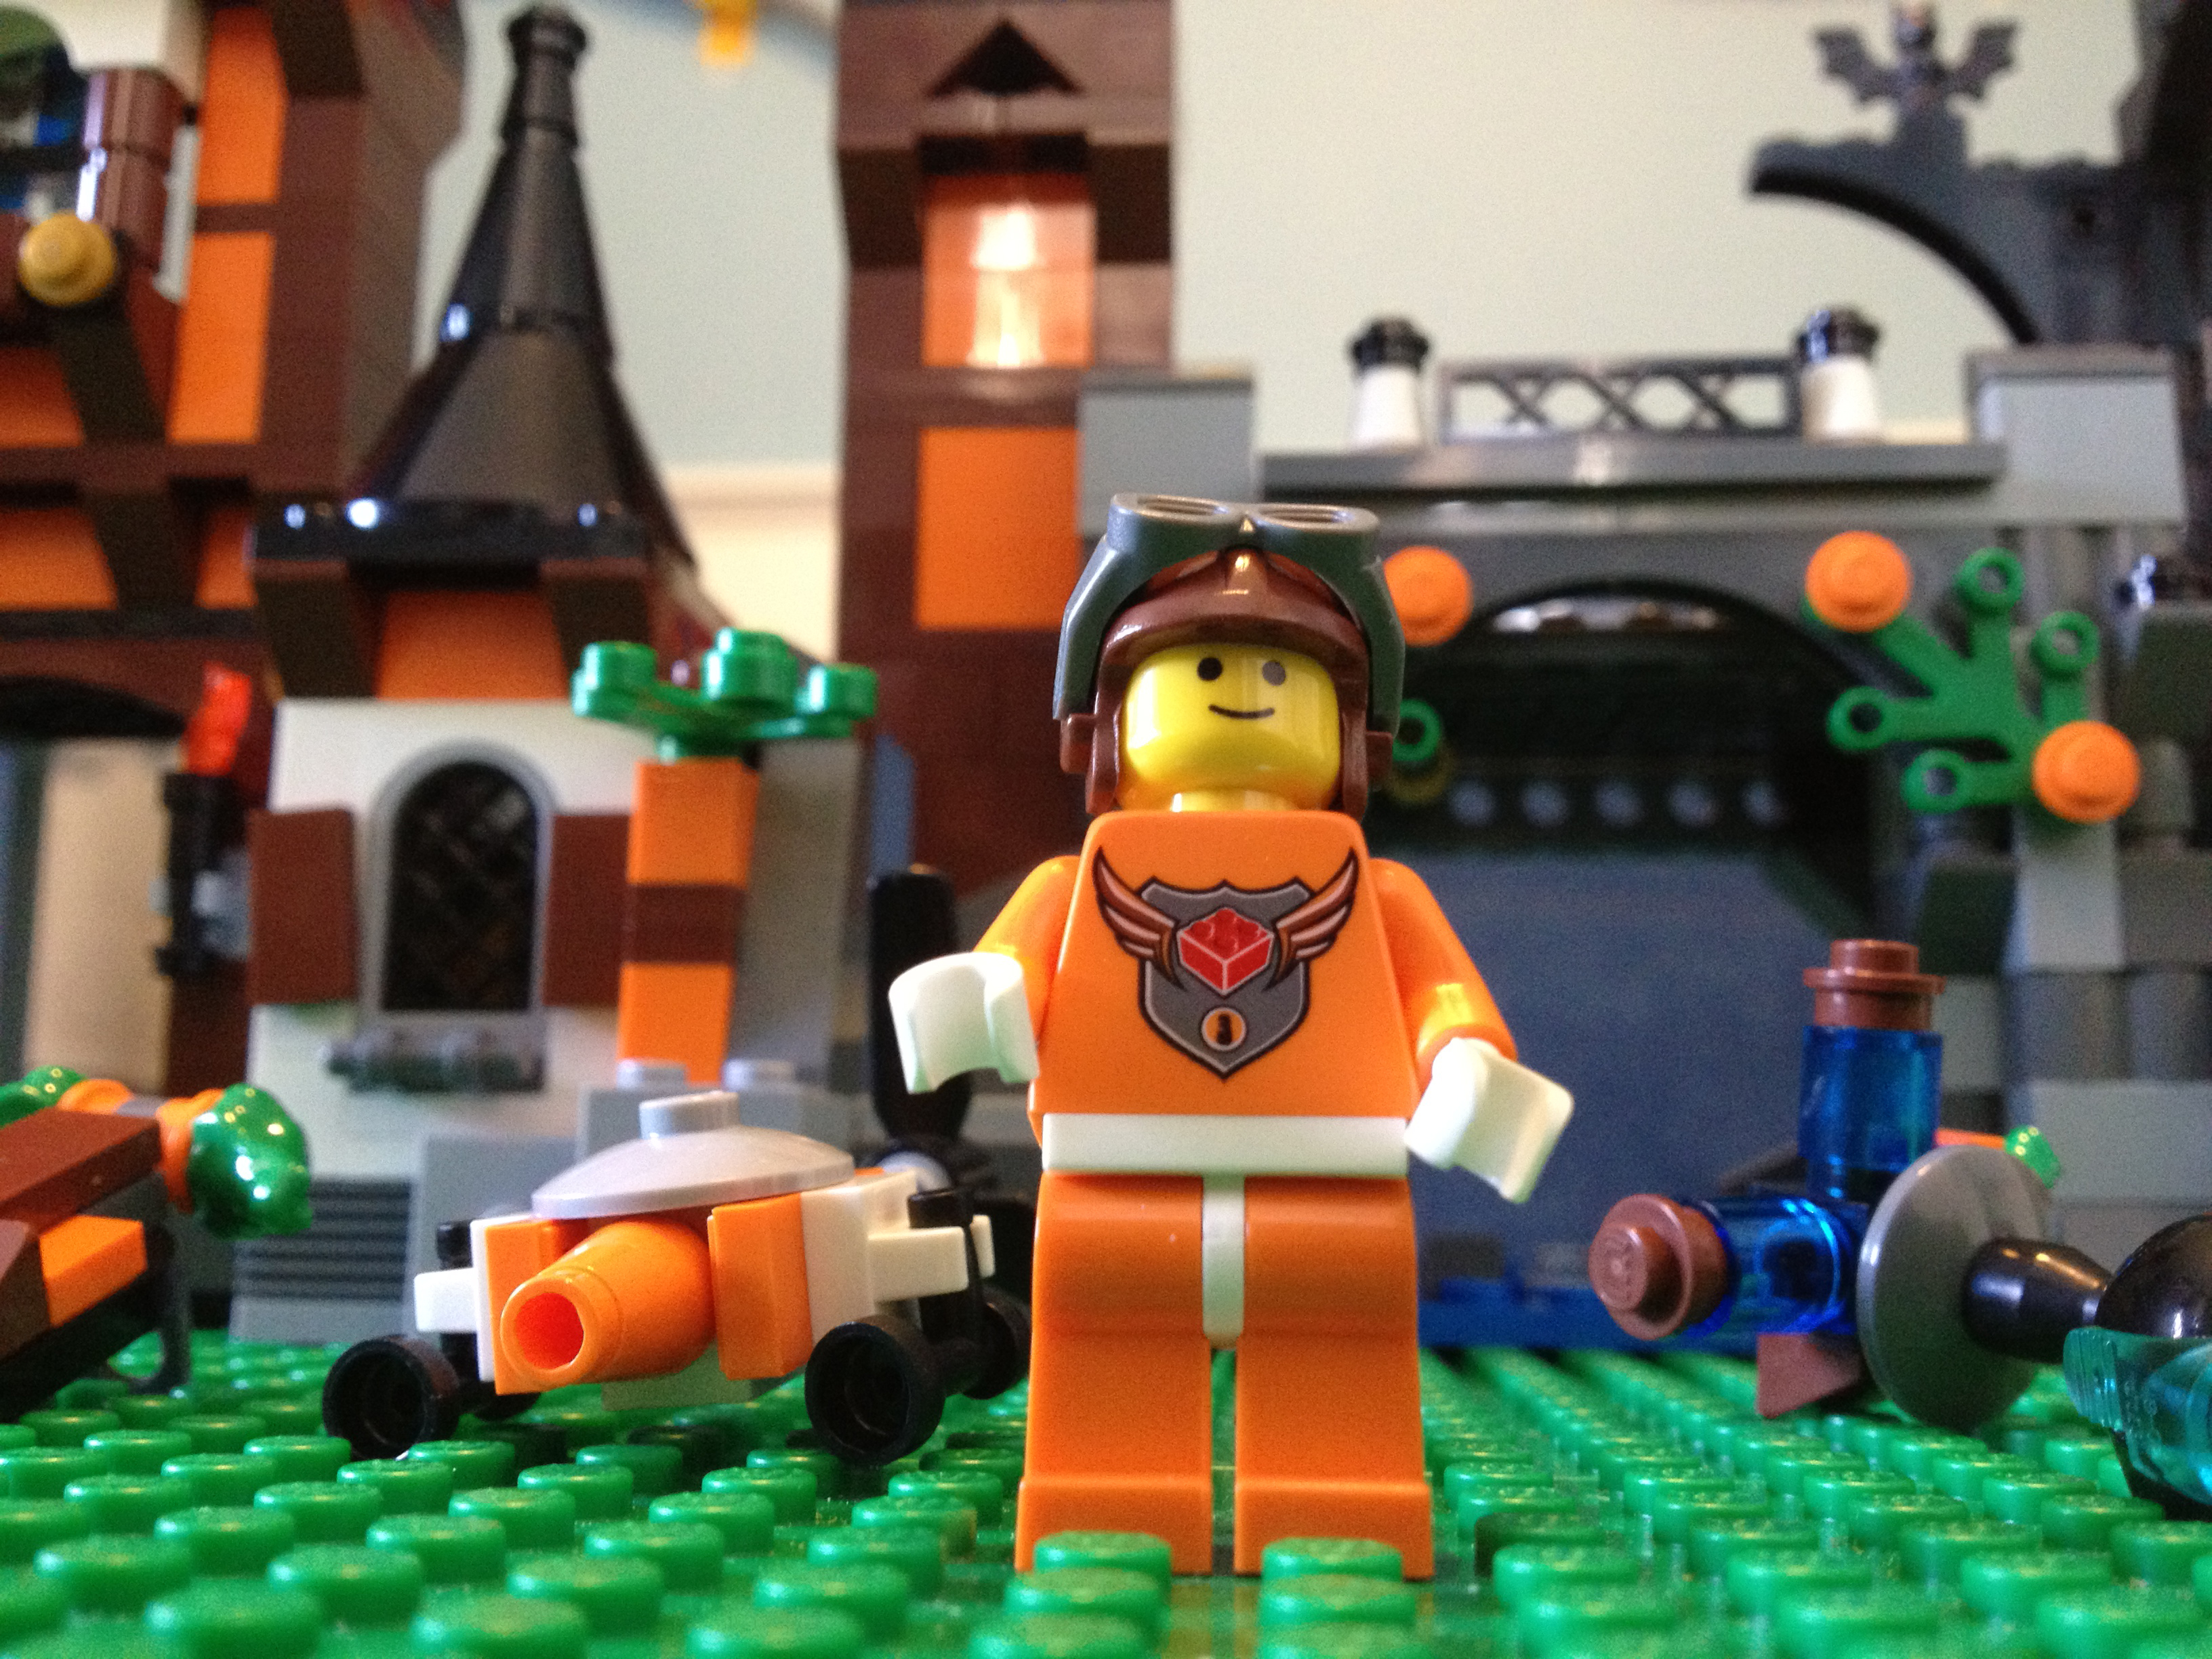 The Complete Level 3 LEGO Master Builder Academy